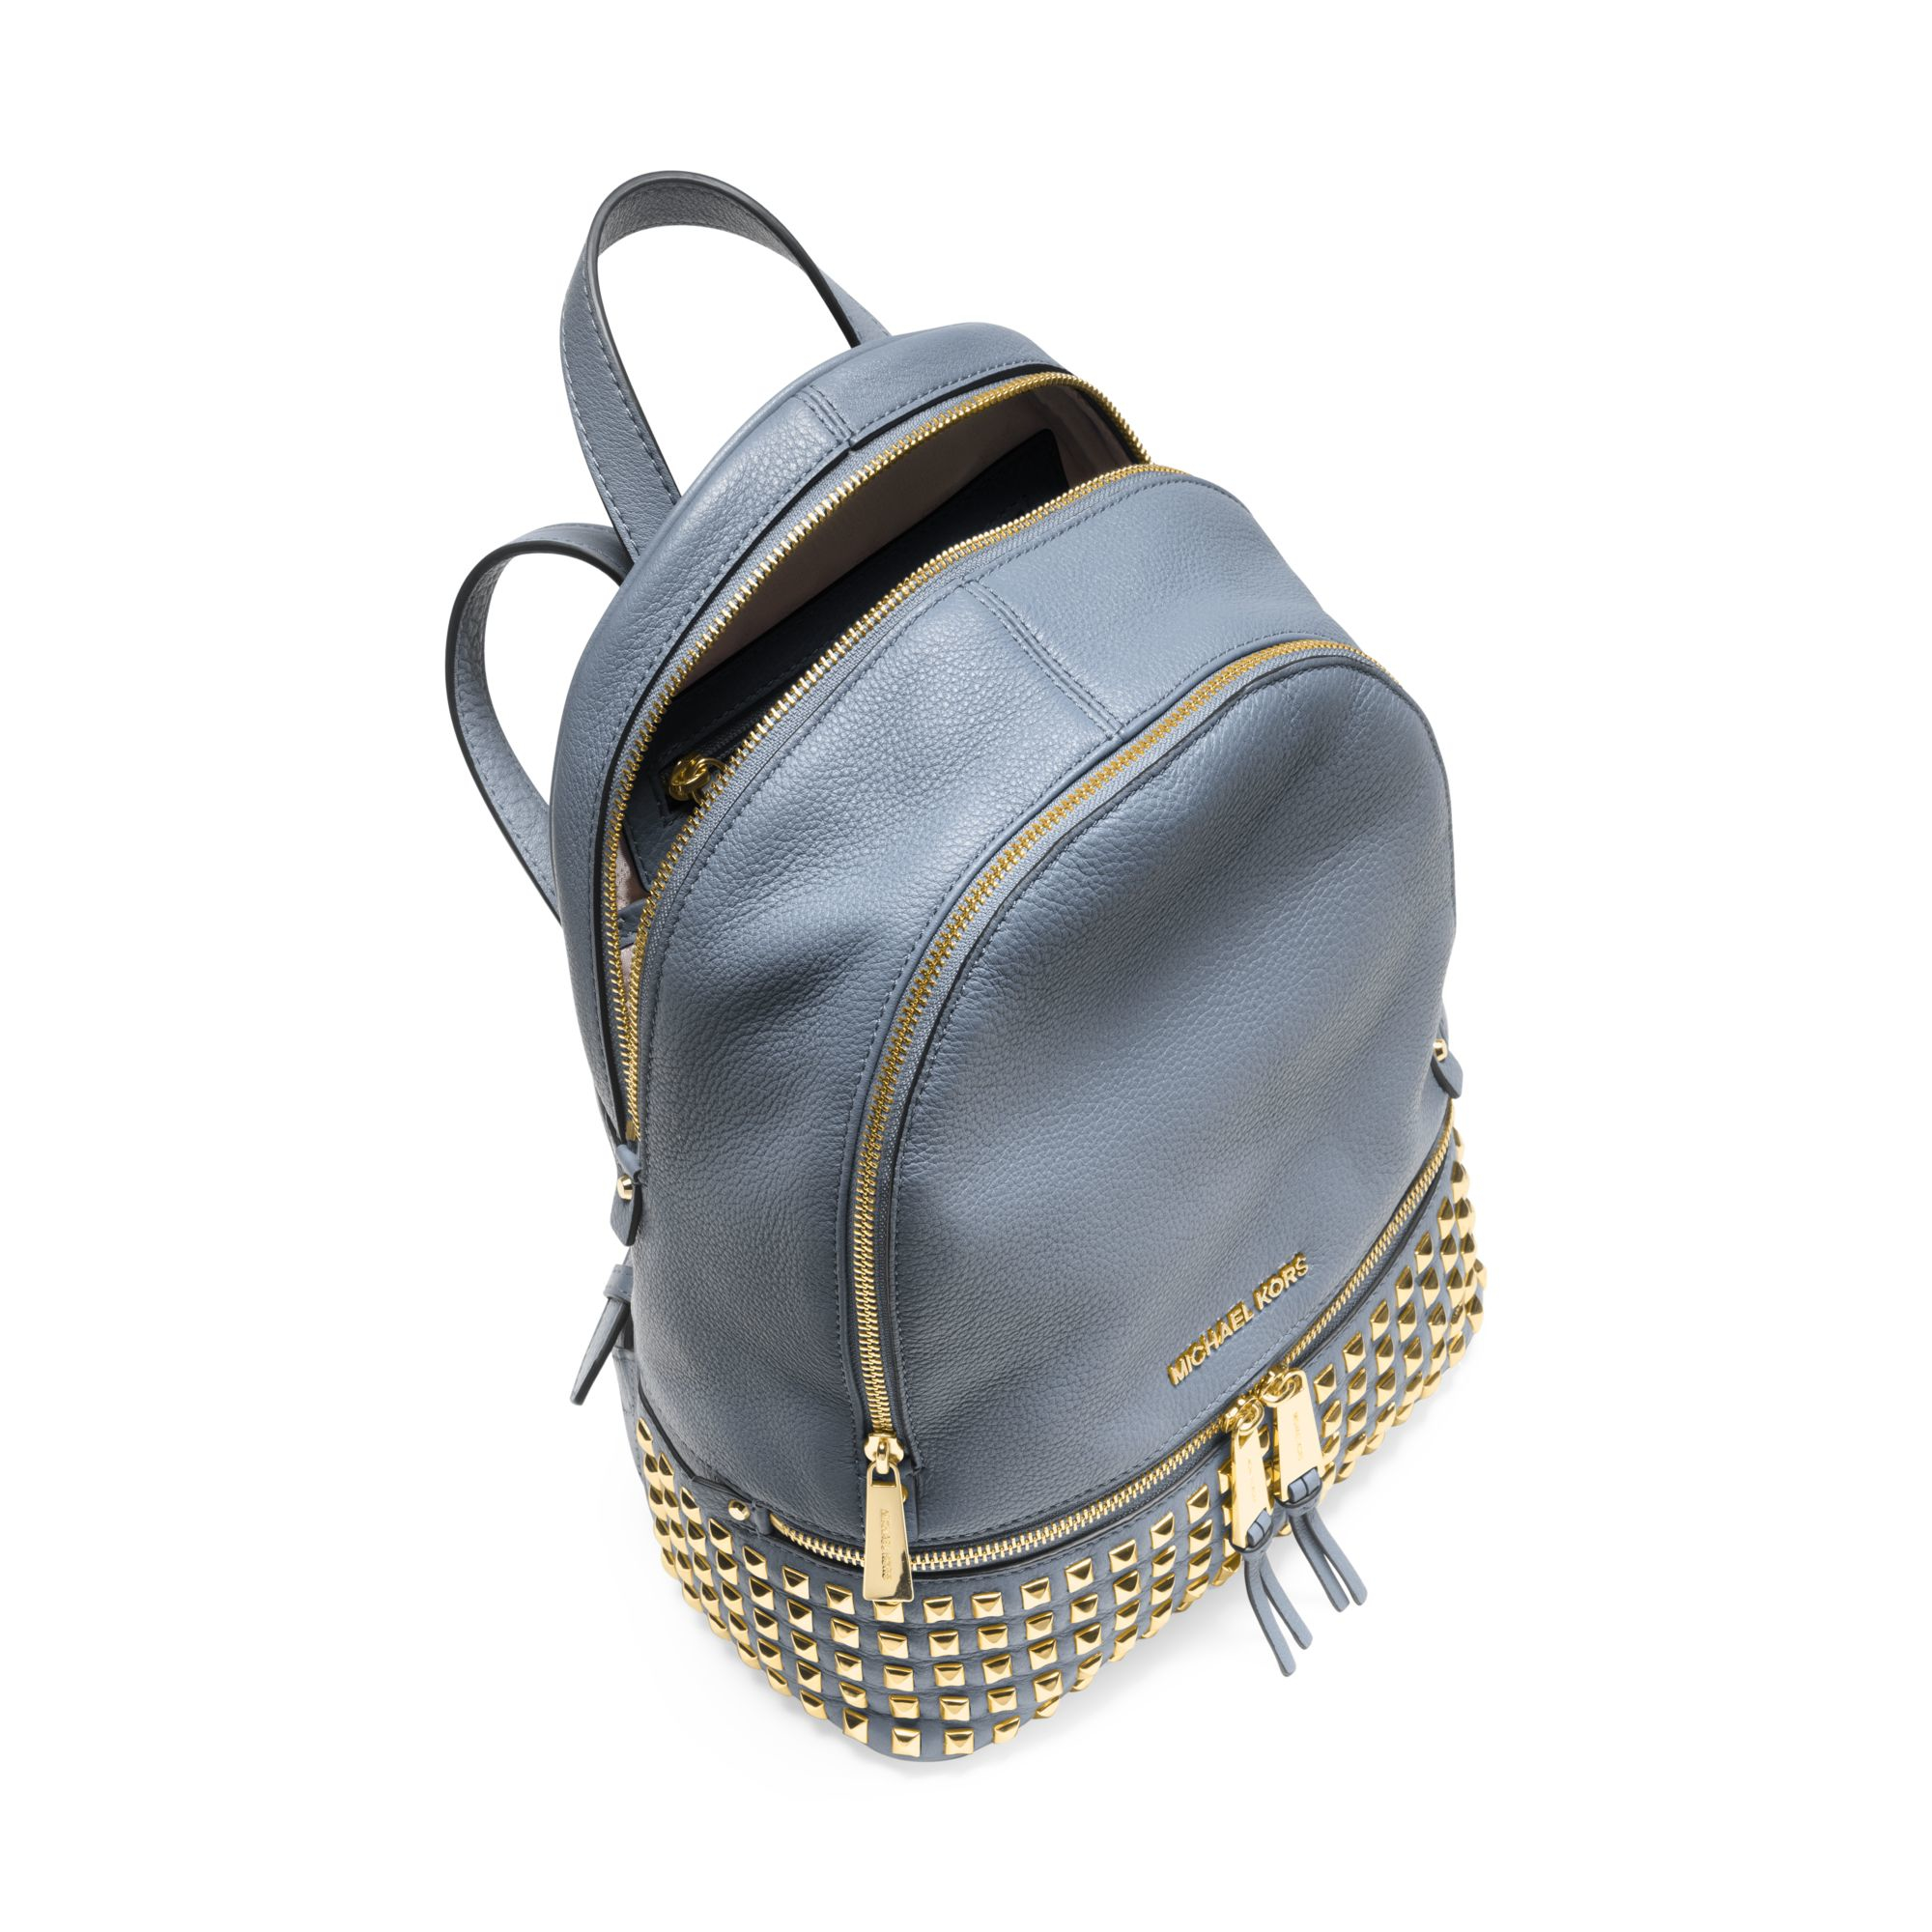 Michael kors Rhea Small Studded Leather Backpack in Blue | Lyst